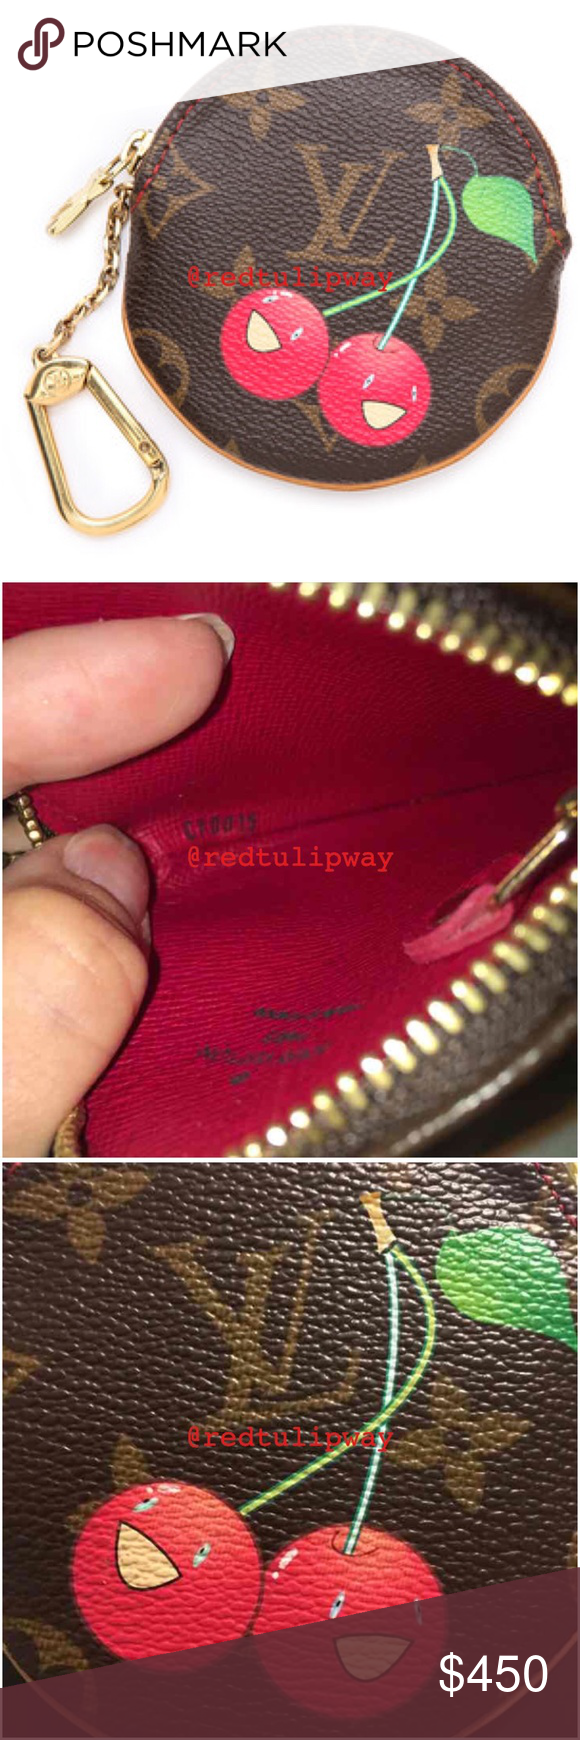 837e1aaca8f Louis Vuitton Cerises Round Coin Purse Guaranteed authentic limited ...